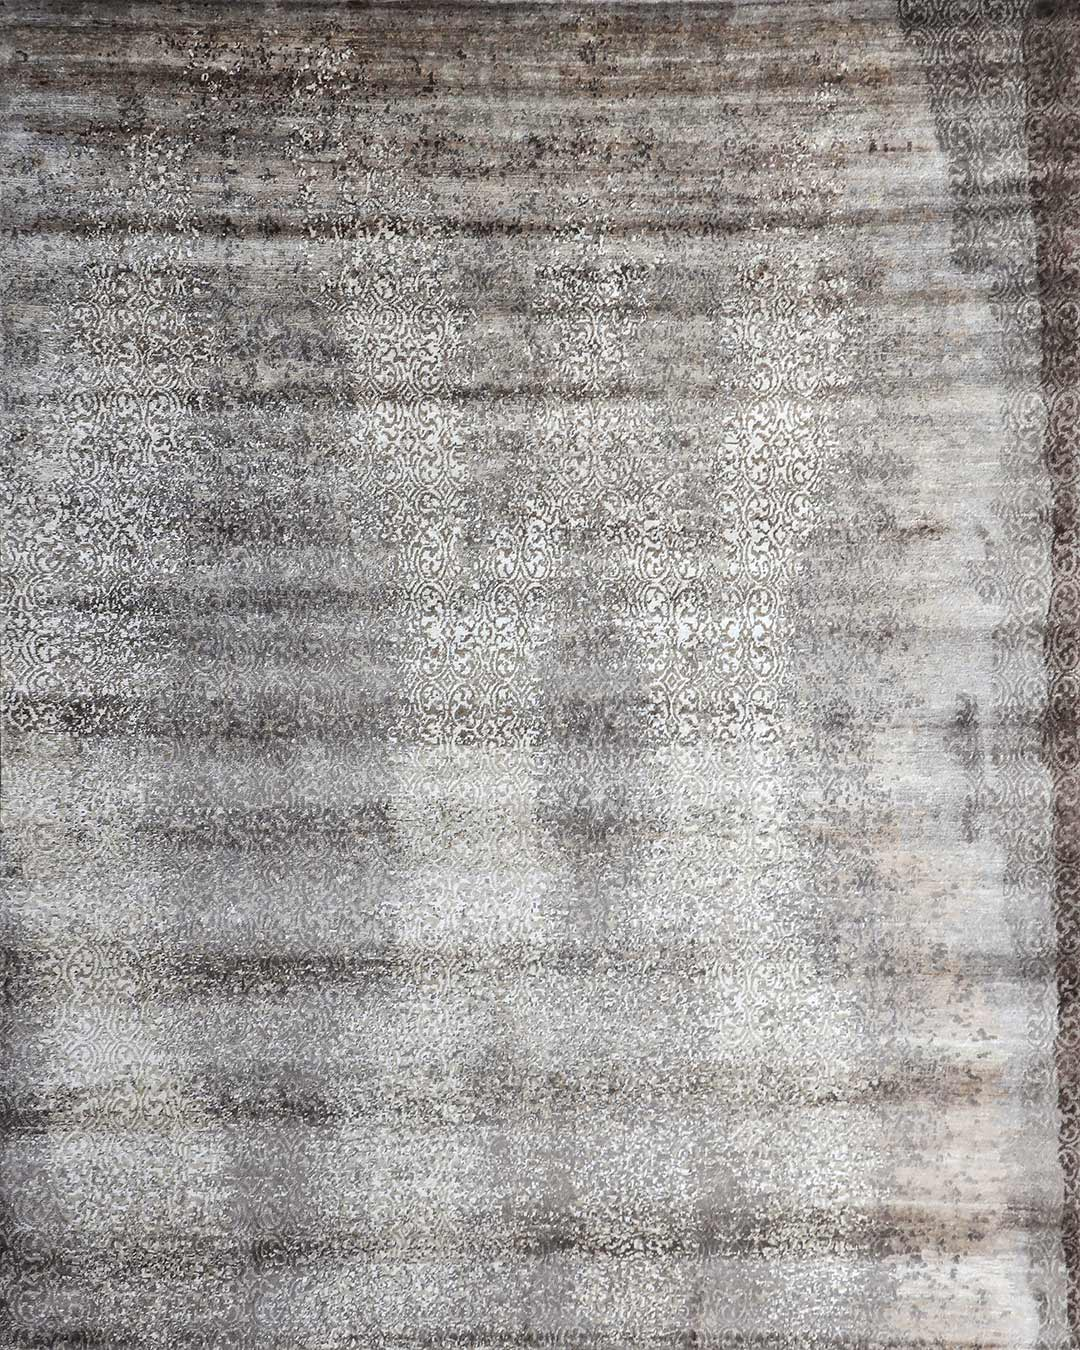 Overhead image of Misty handknot rug in charcoal colour